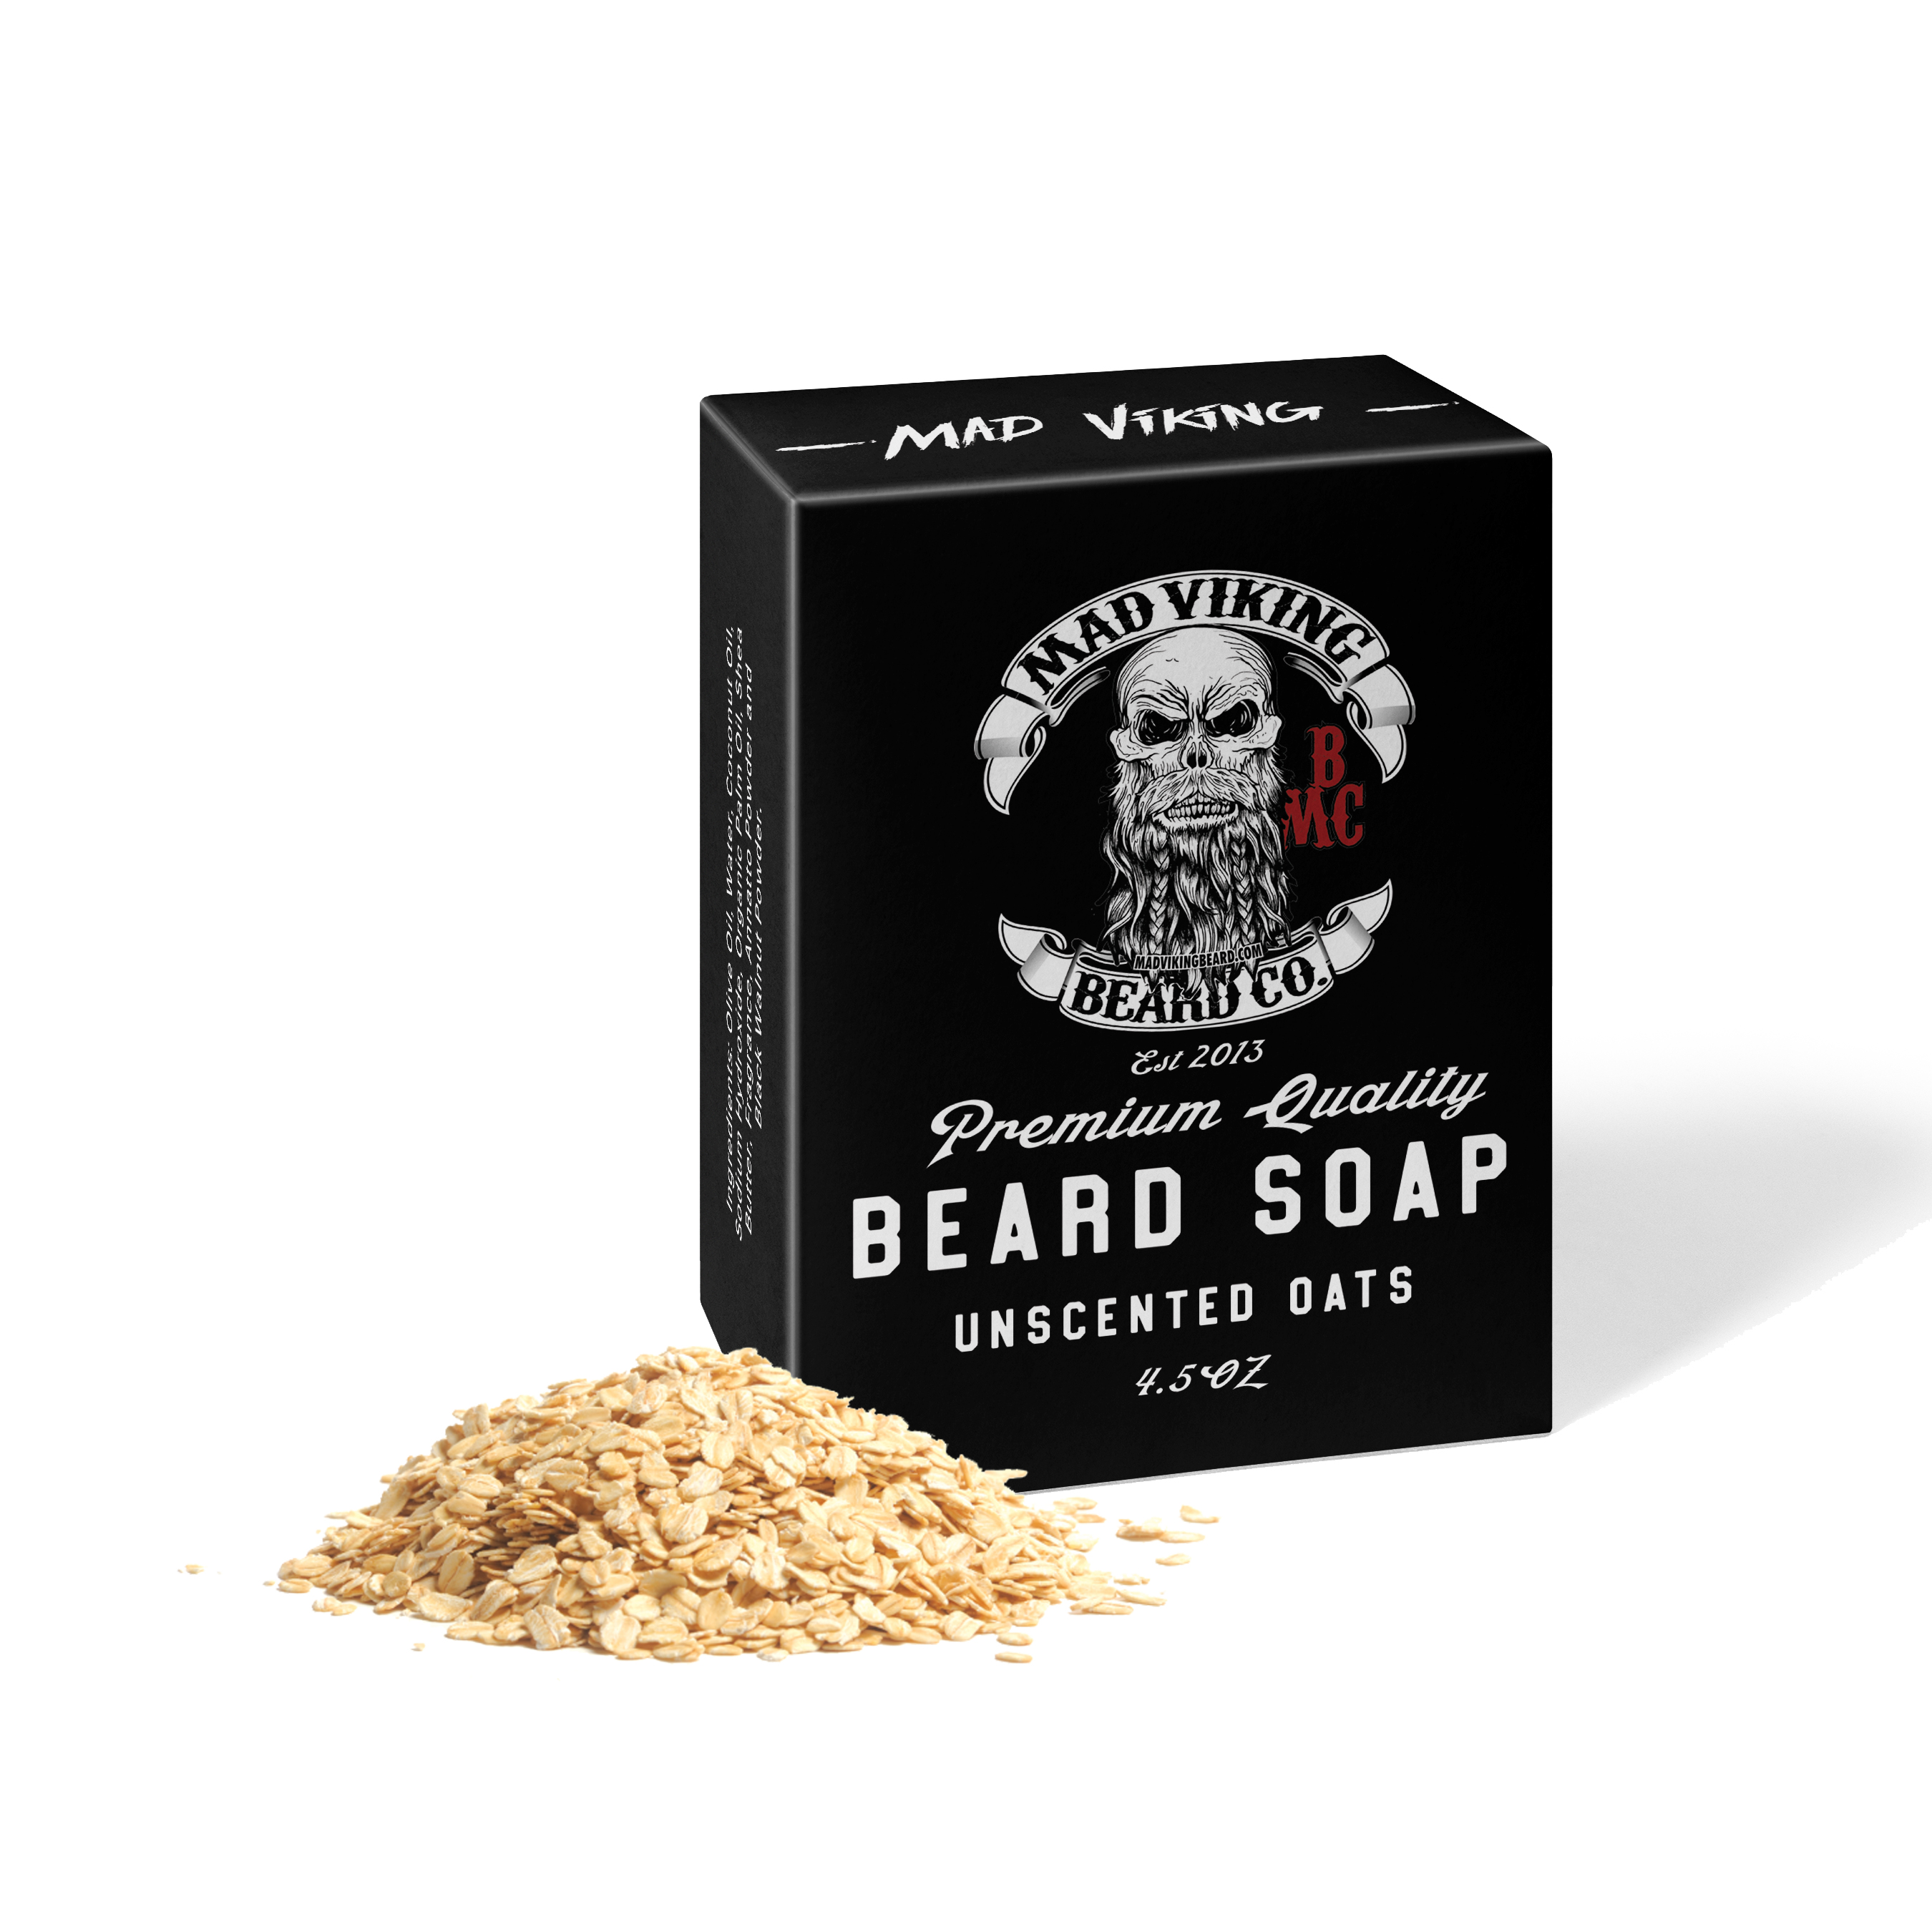 Mad Viking Unscented Soap